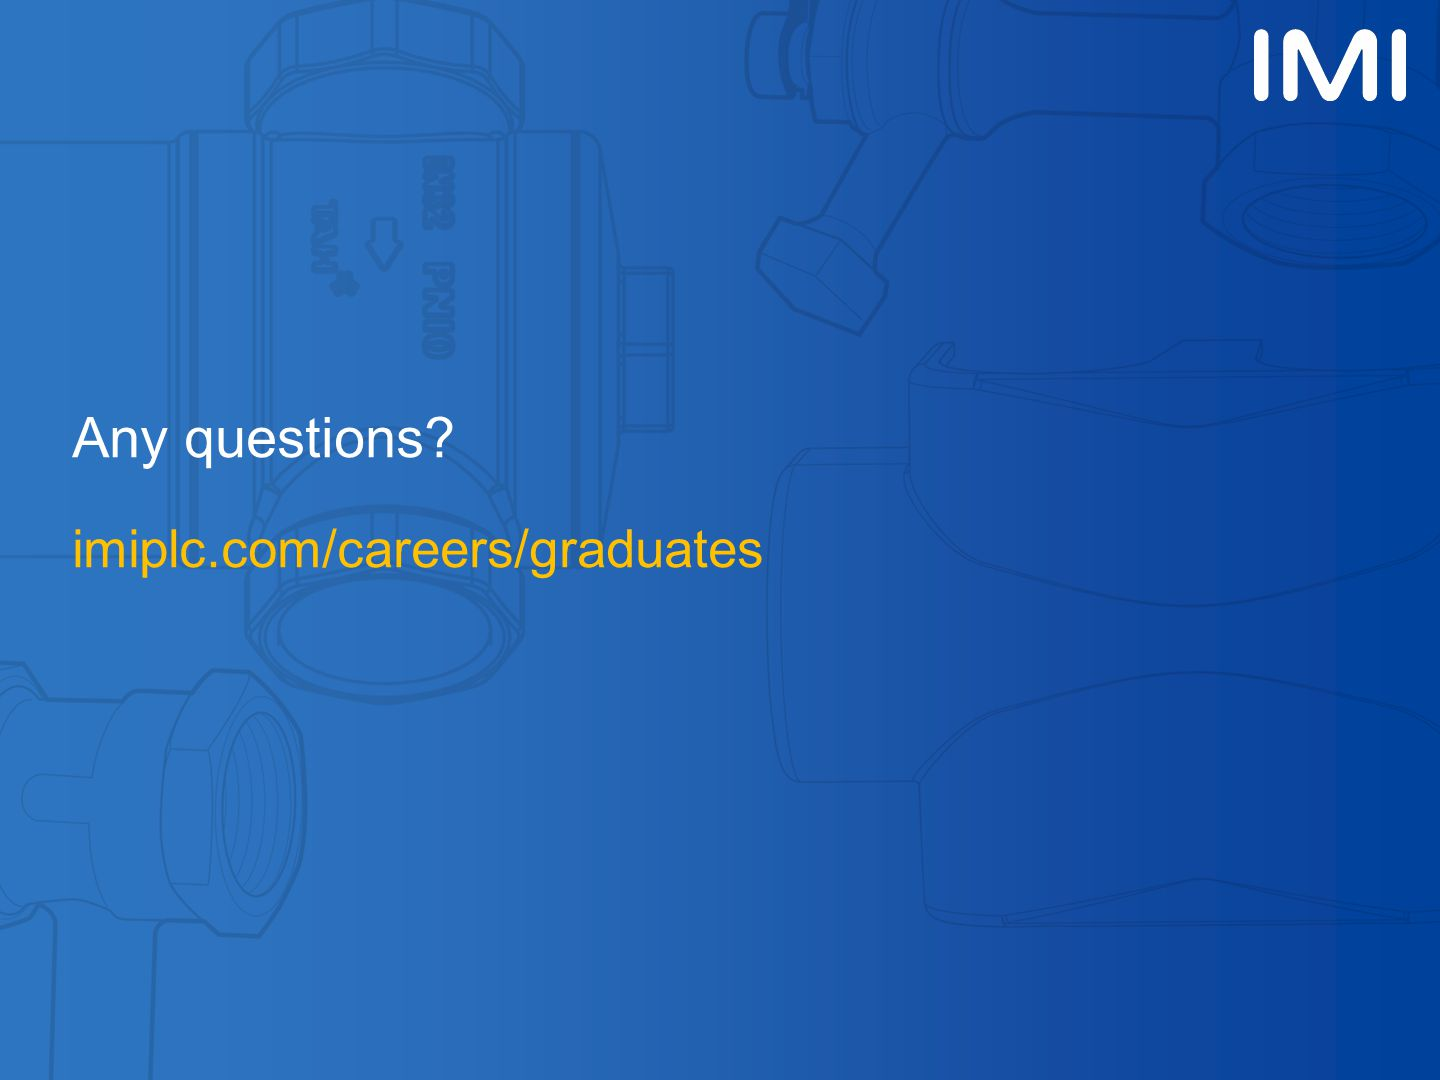 Any questions? imiplc.com/careers/graduates